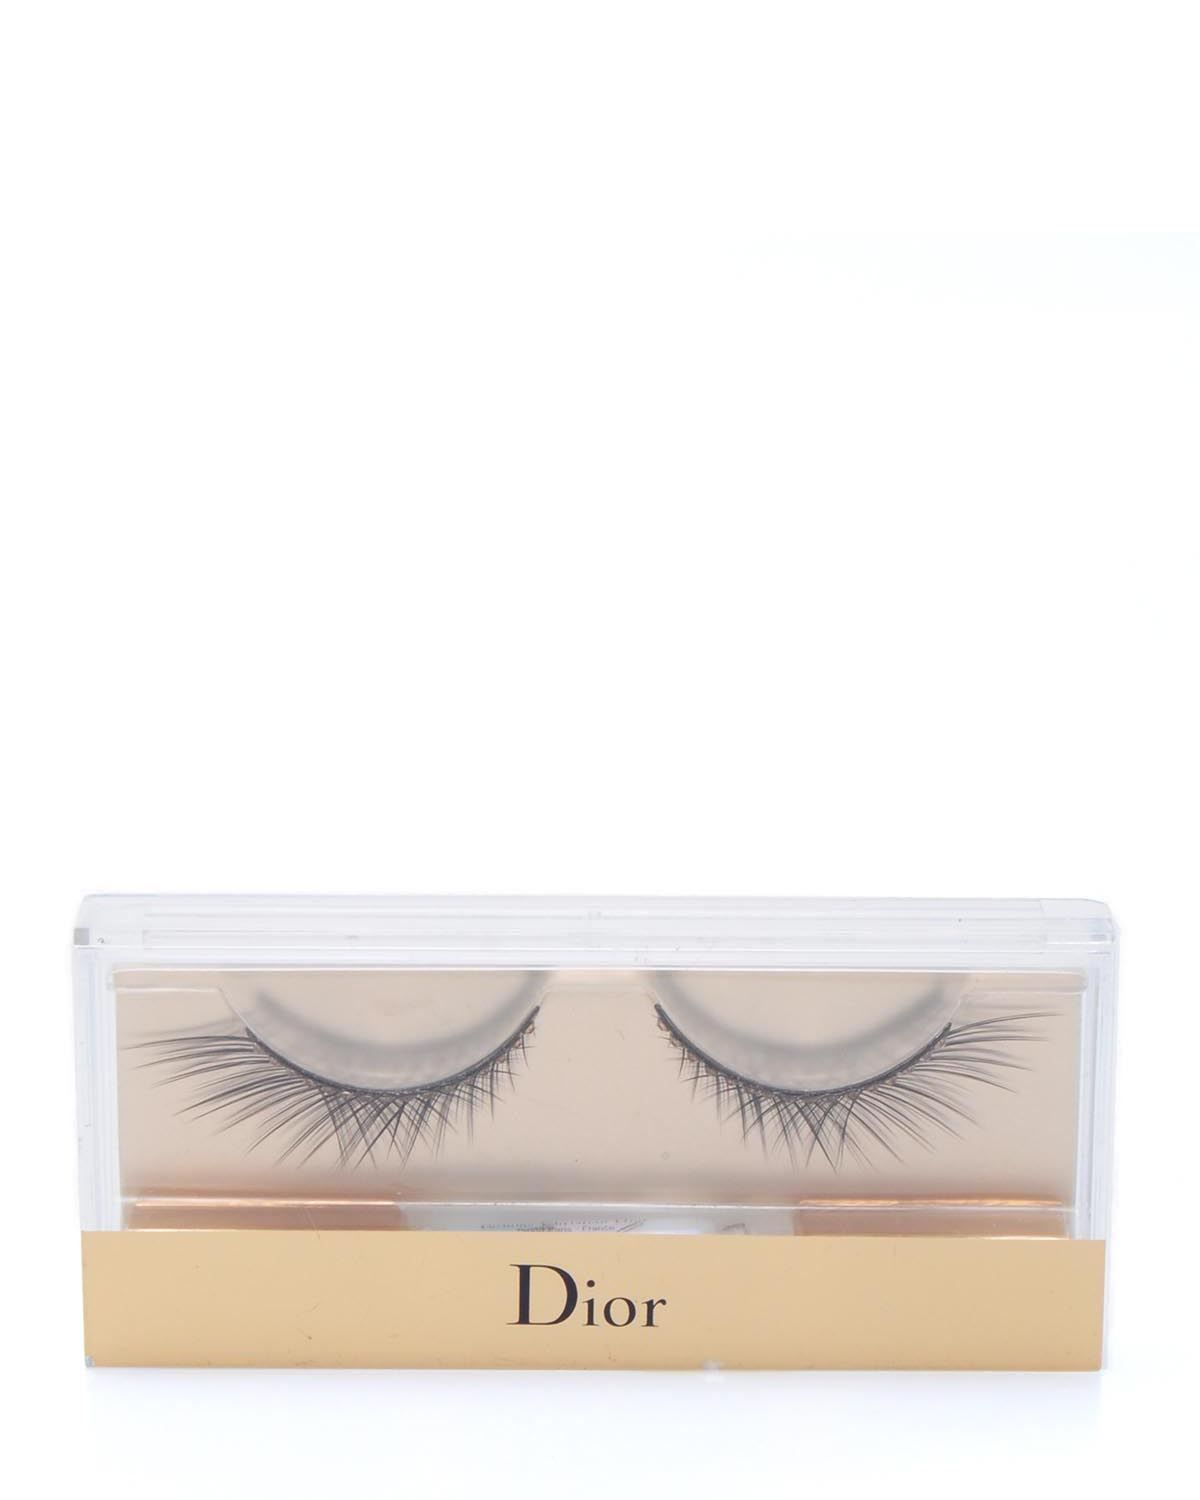 Dior Grand Bal Ready To Apply False Eyelashes Adorned With Soft Gold